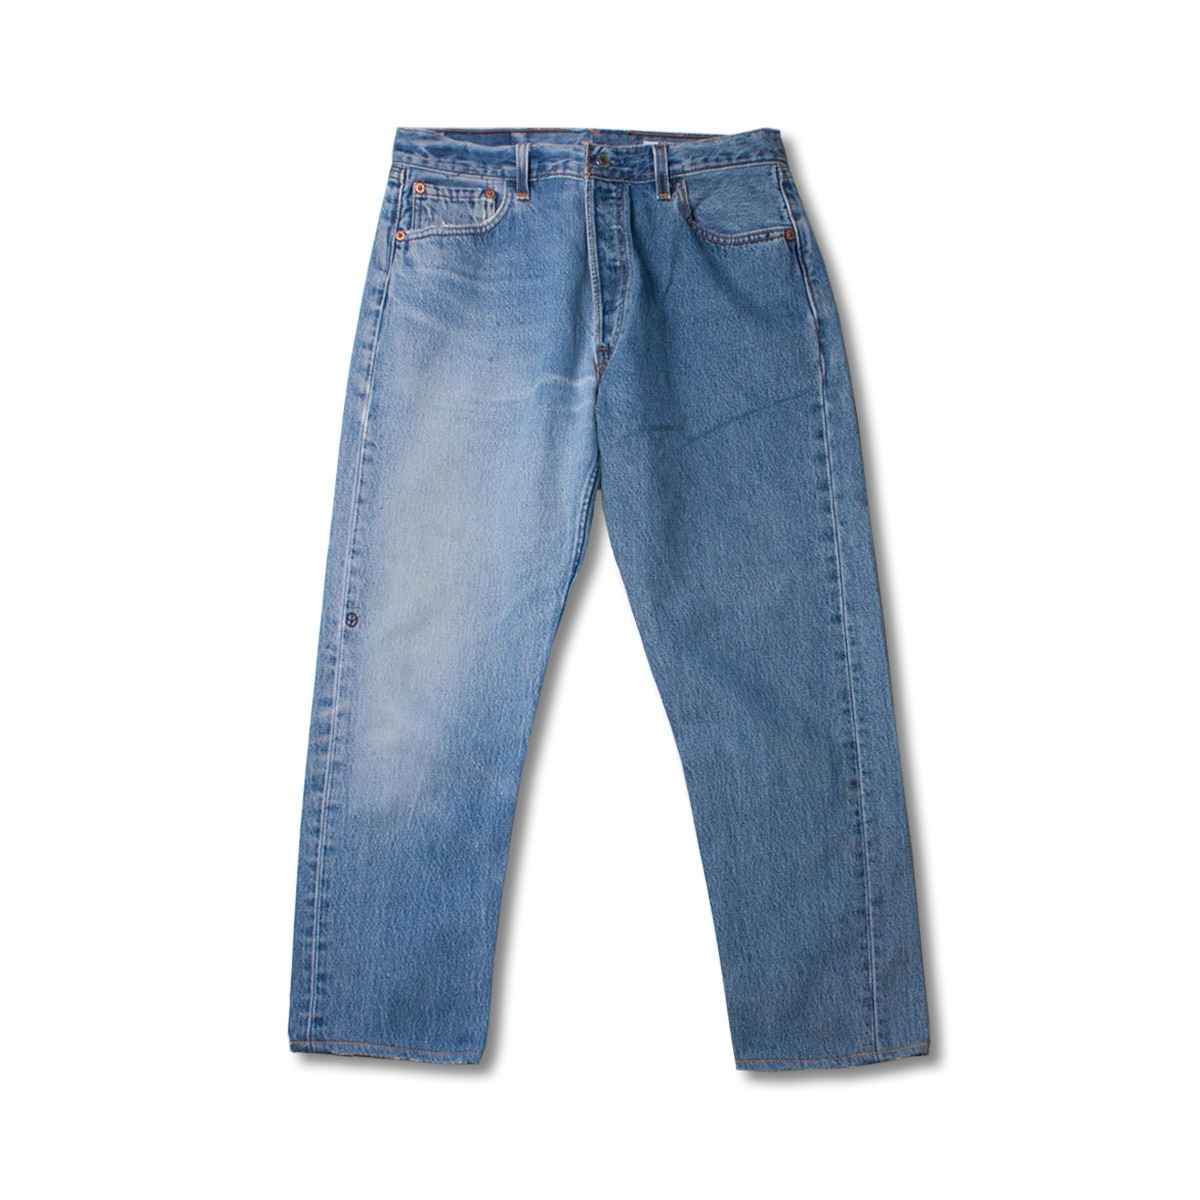 [SUNNY SIDE UP] RE 2FOR1 DENIM 5P PANTS  'USED WASH'